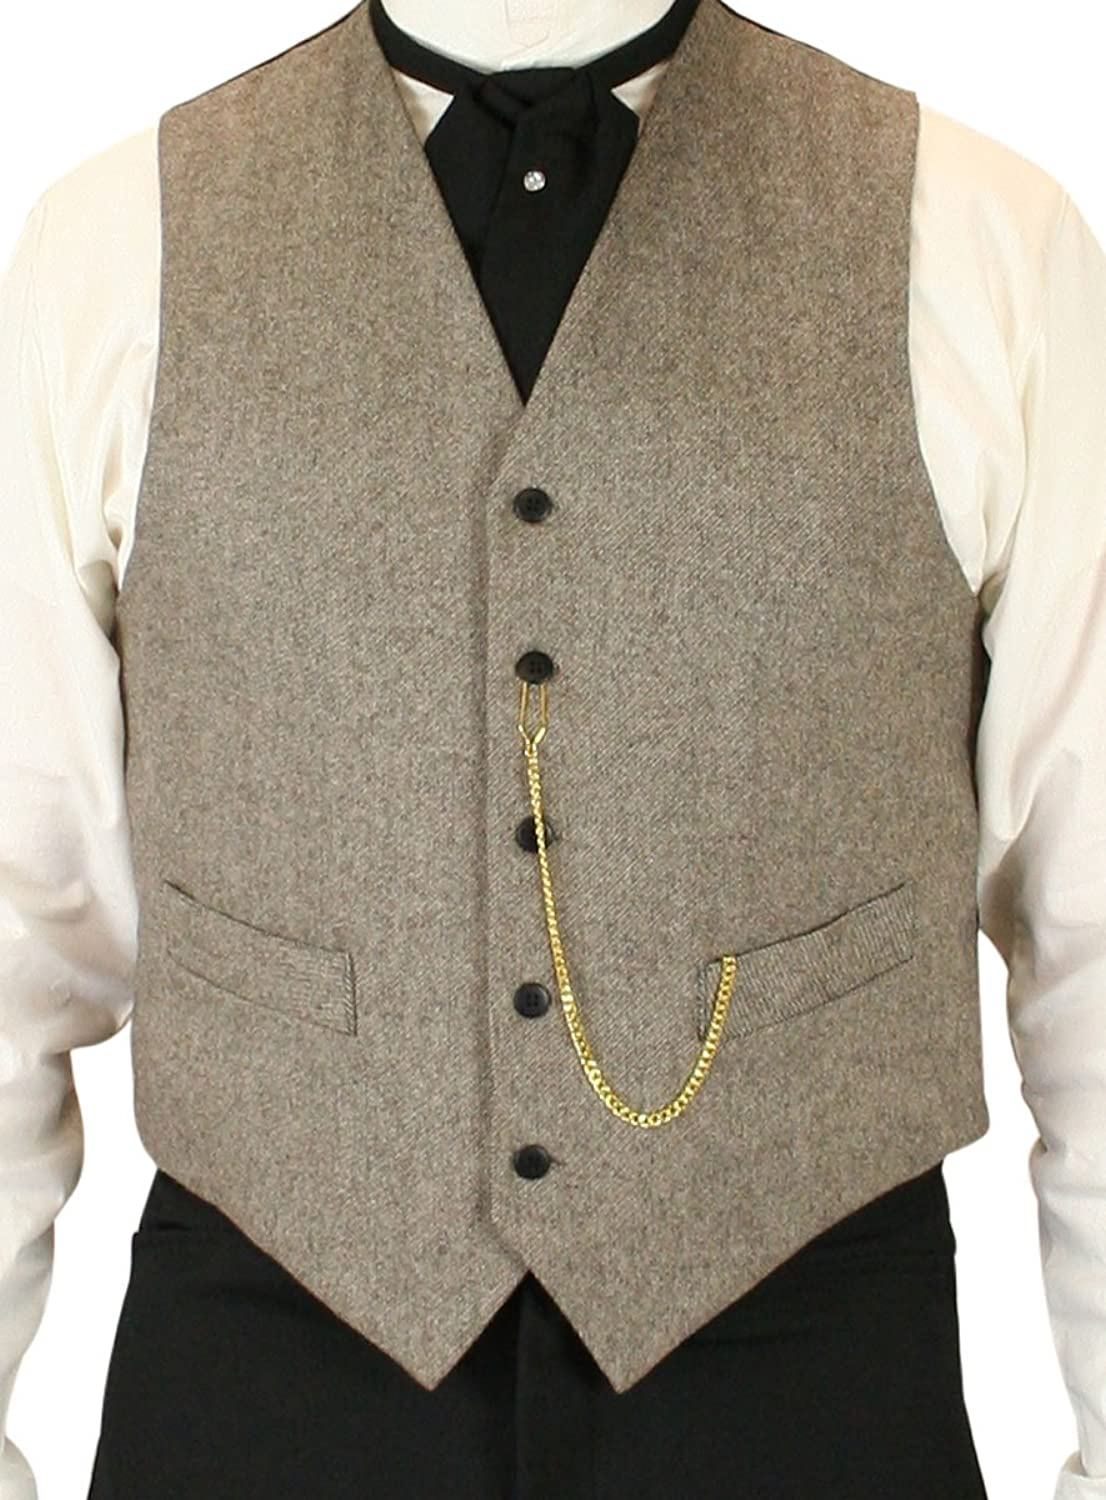 Men's Steampunk Vests, Waistcoats, Corsets  100% Wool Tweed Dress Vest Historical Emporium Mens Peabody $68.95 AT vintagedancer.com